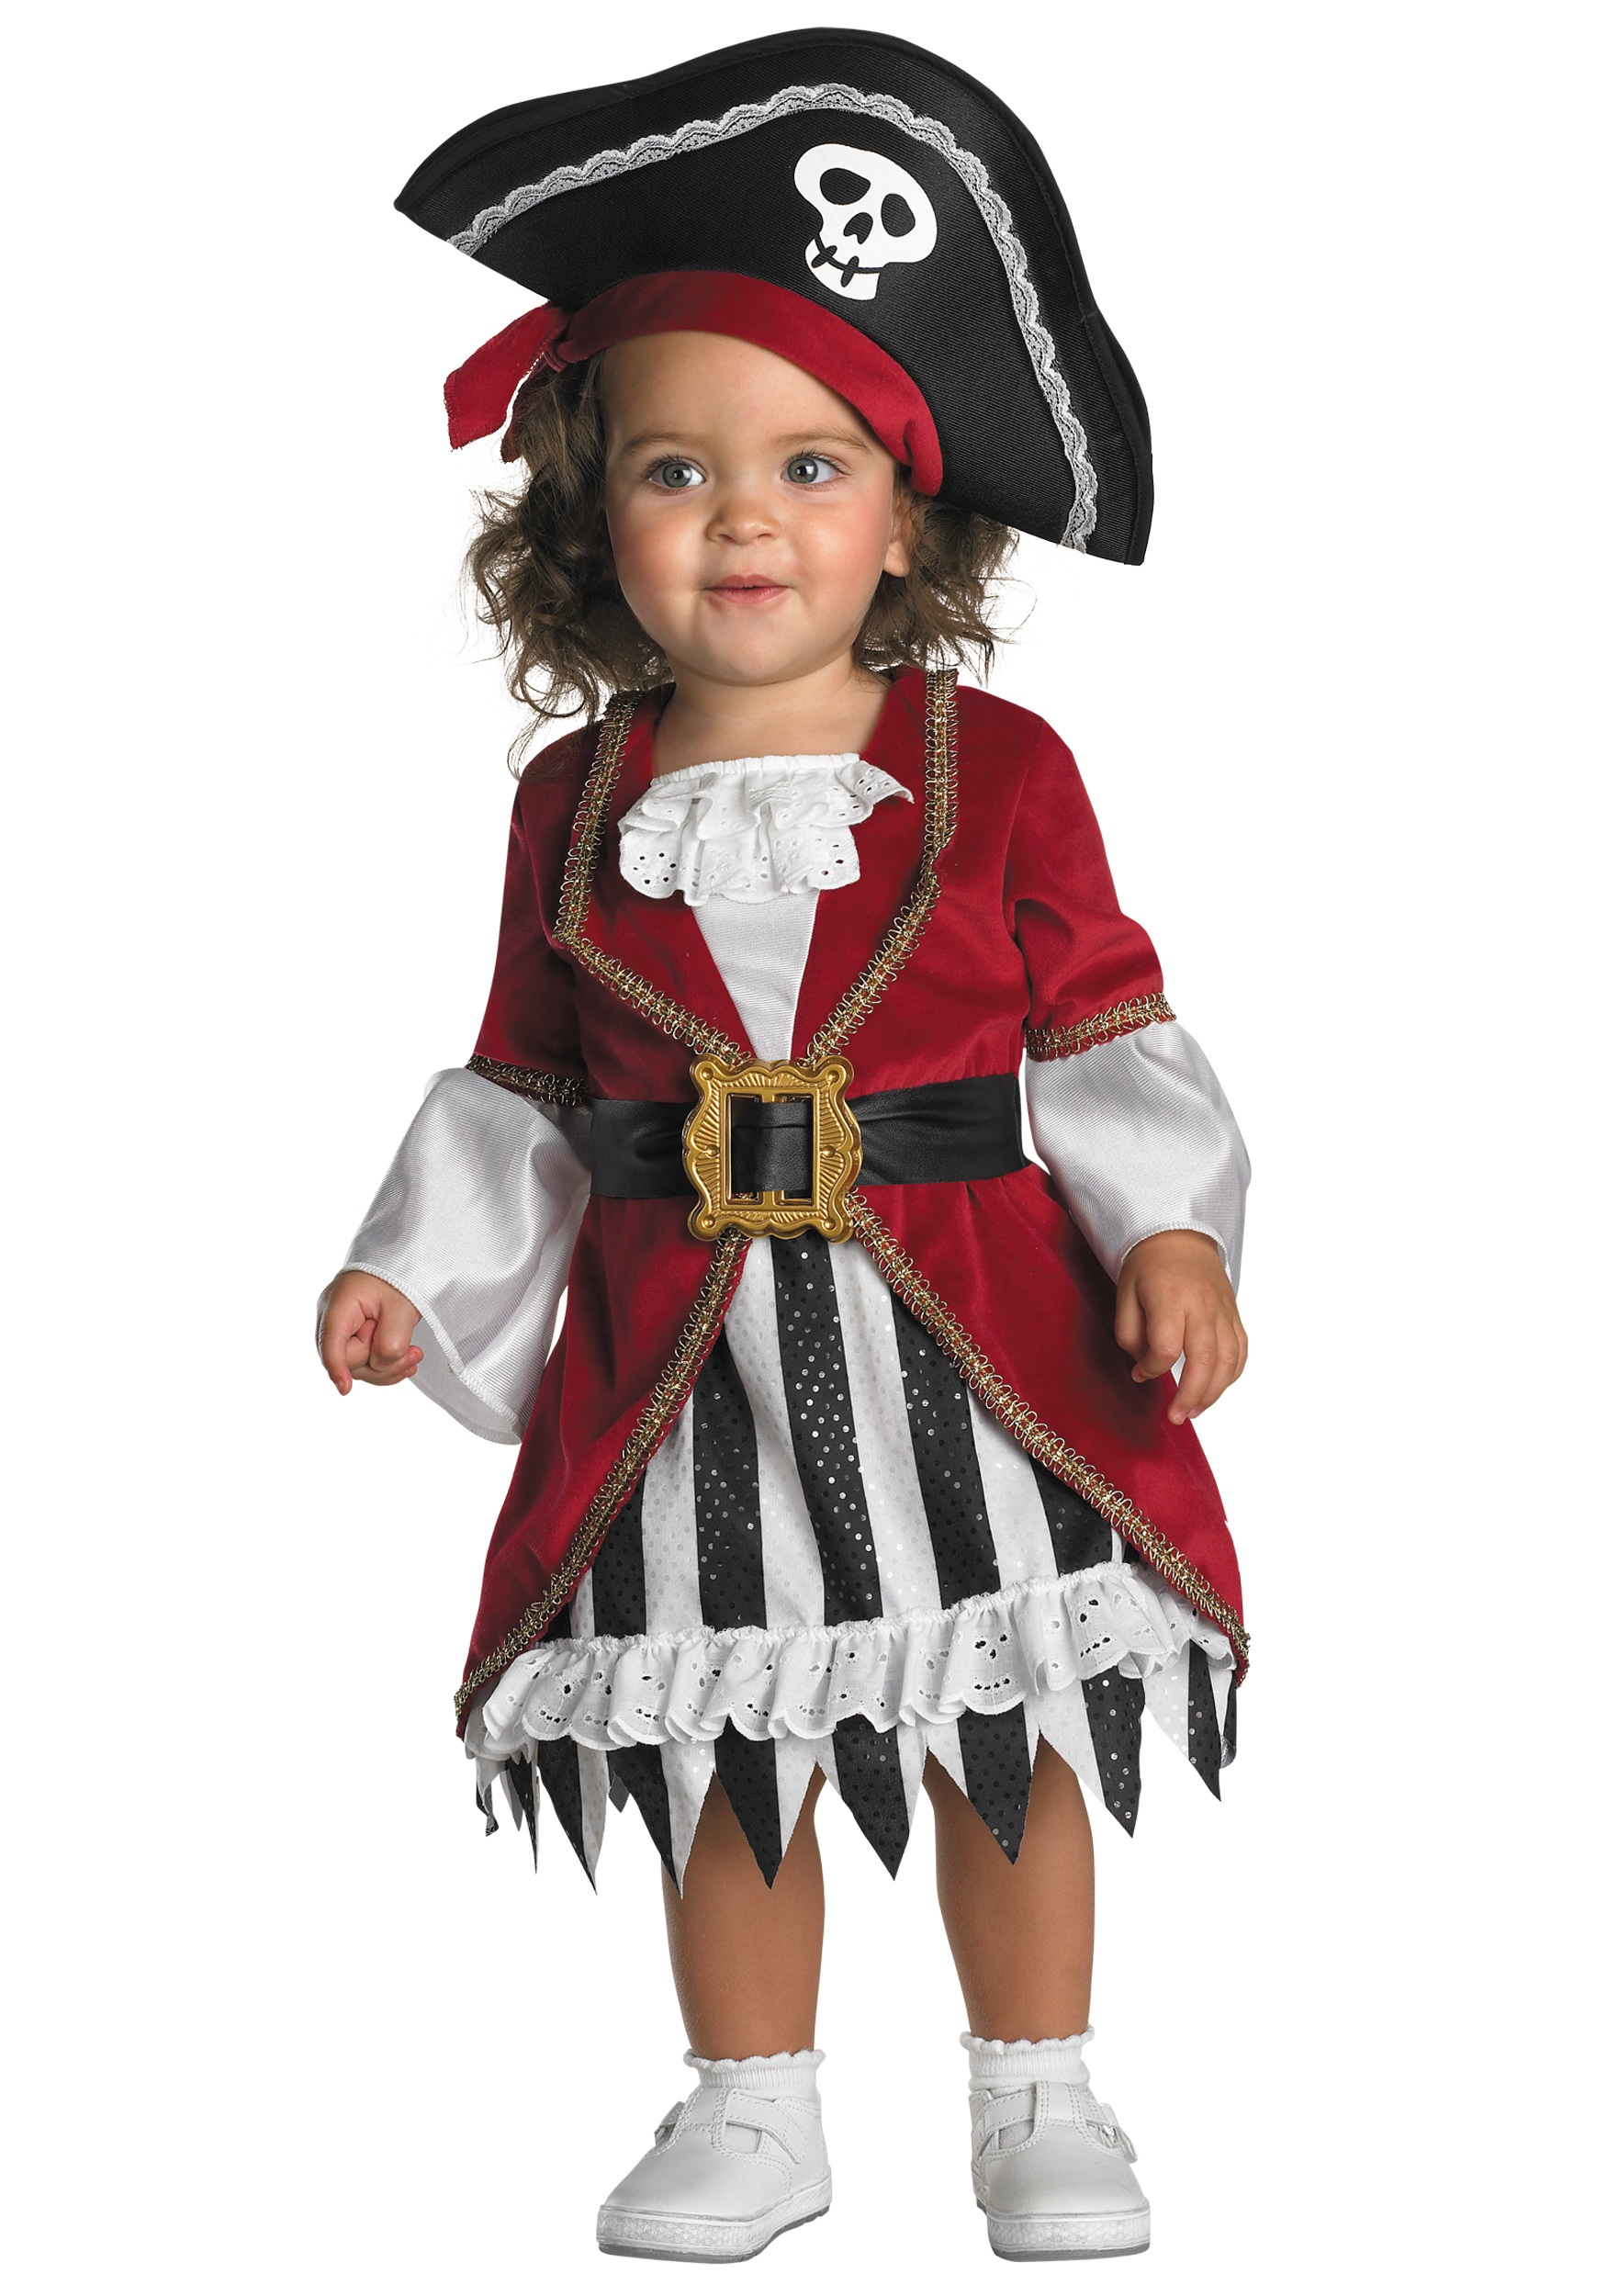 Toddler Pirate Princess Costume  sc 1 st  Halloween Costume & Toddler Pirate Princess Costume - Girls Pirate Halloween Costumes